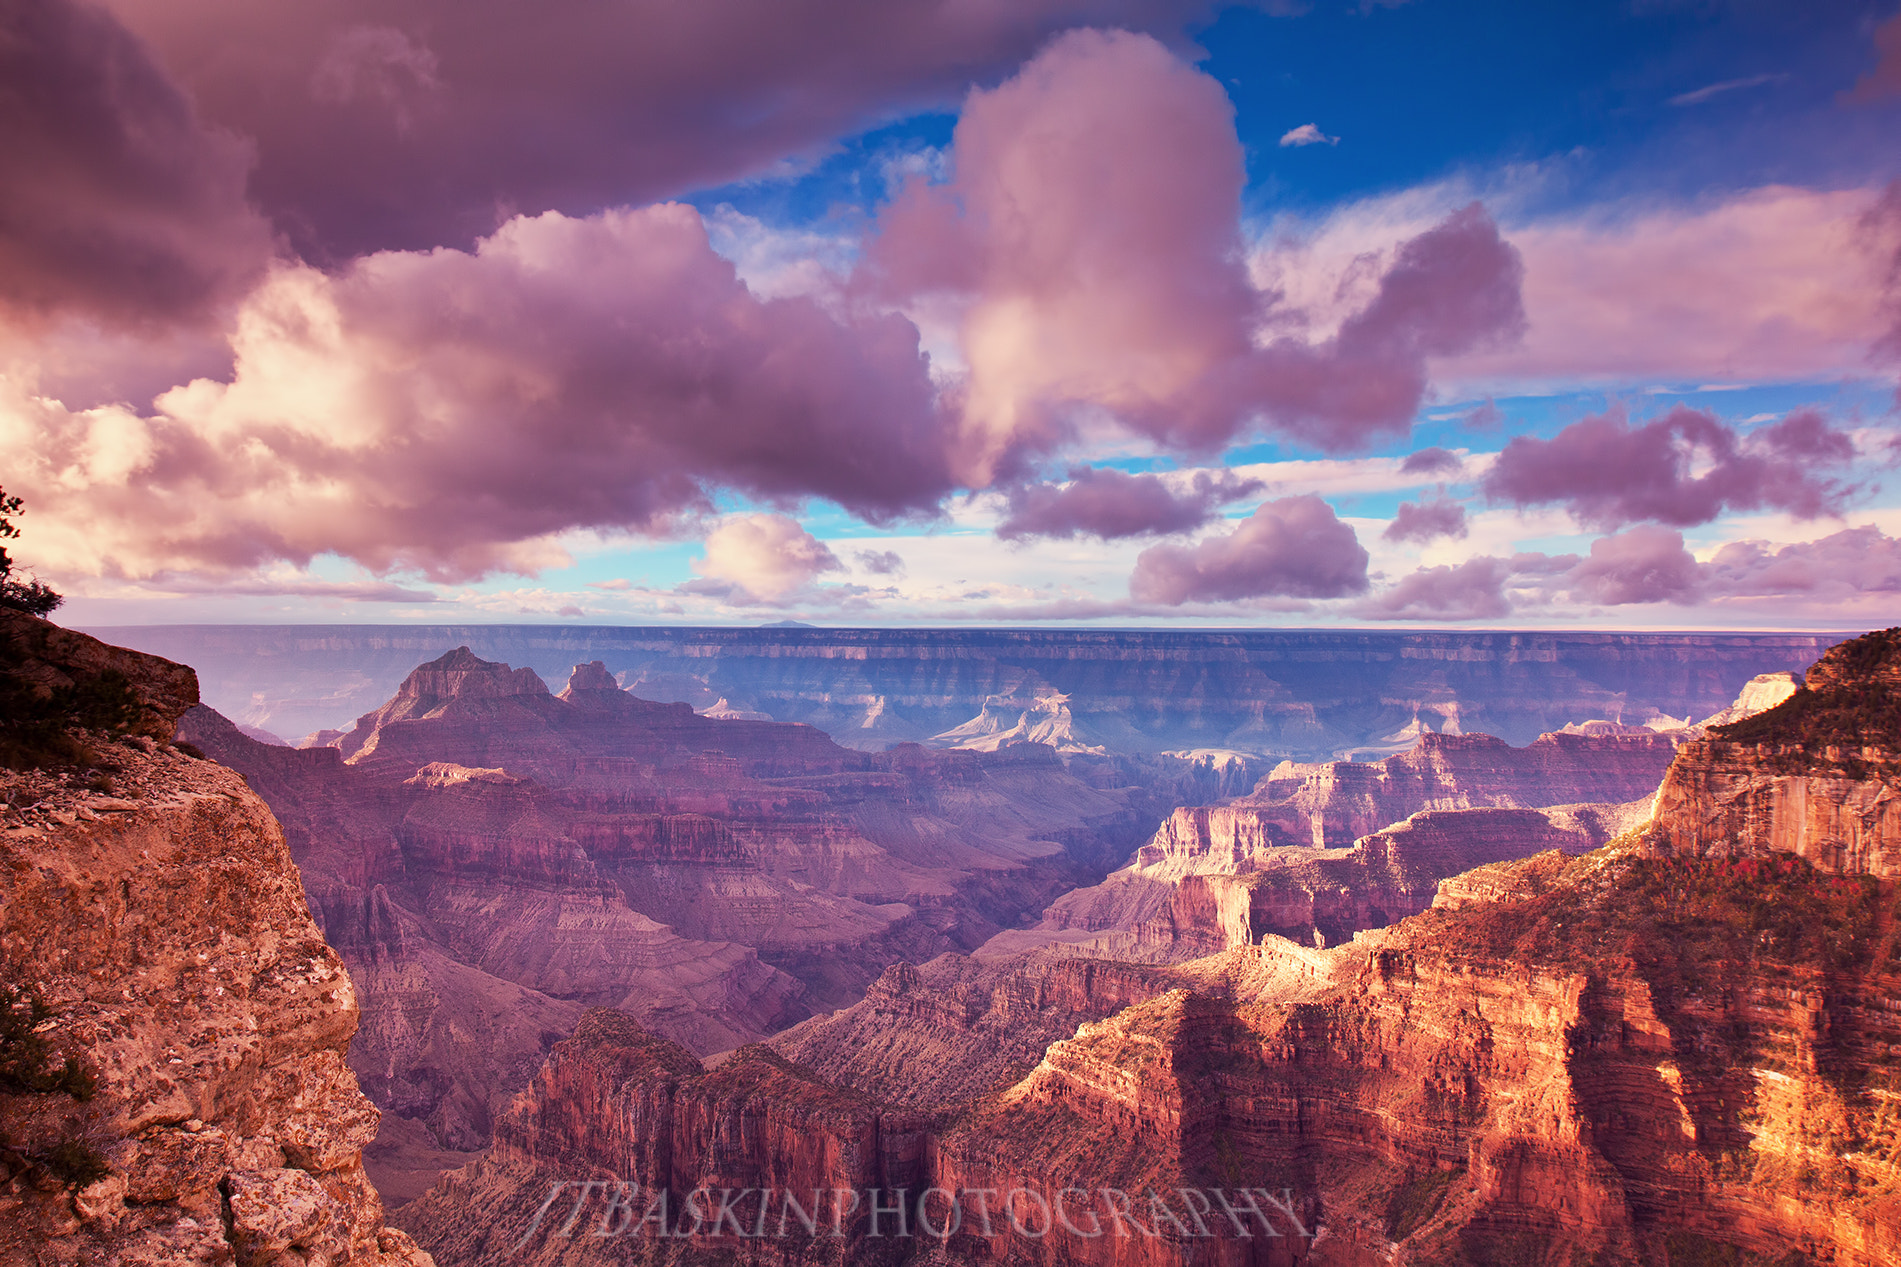 Photograph Grand Canyon Glory - Grand Canyon National Park, AZ by taylor baskin on 500px